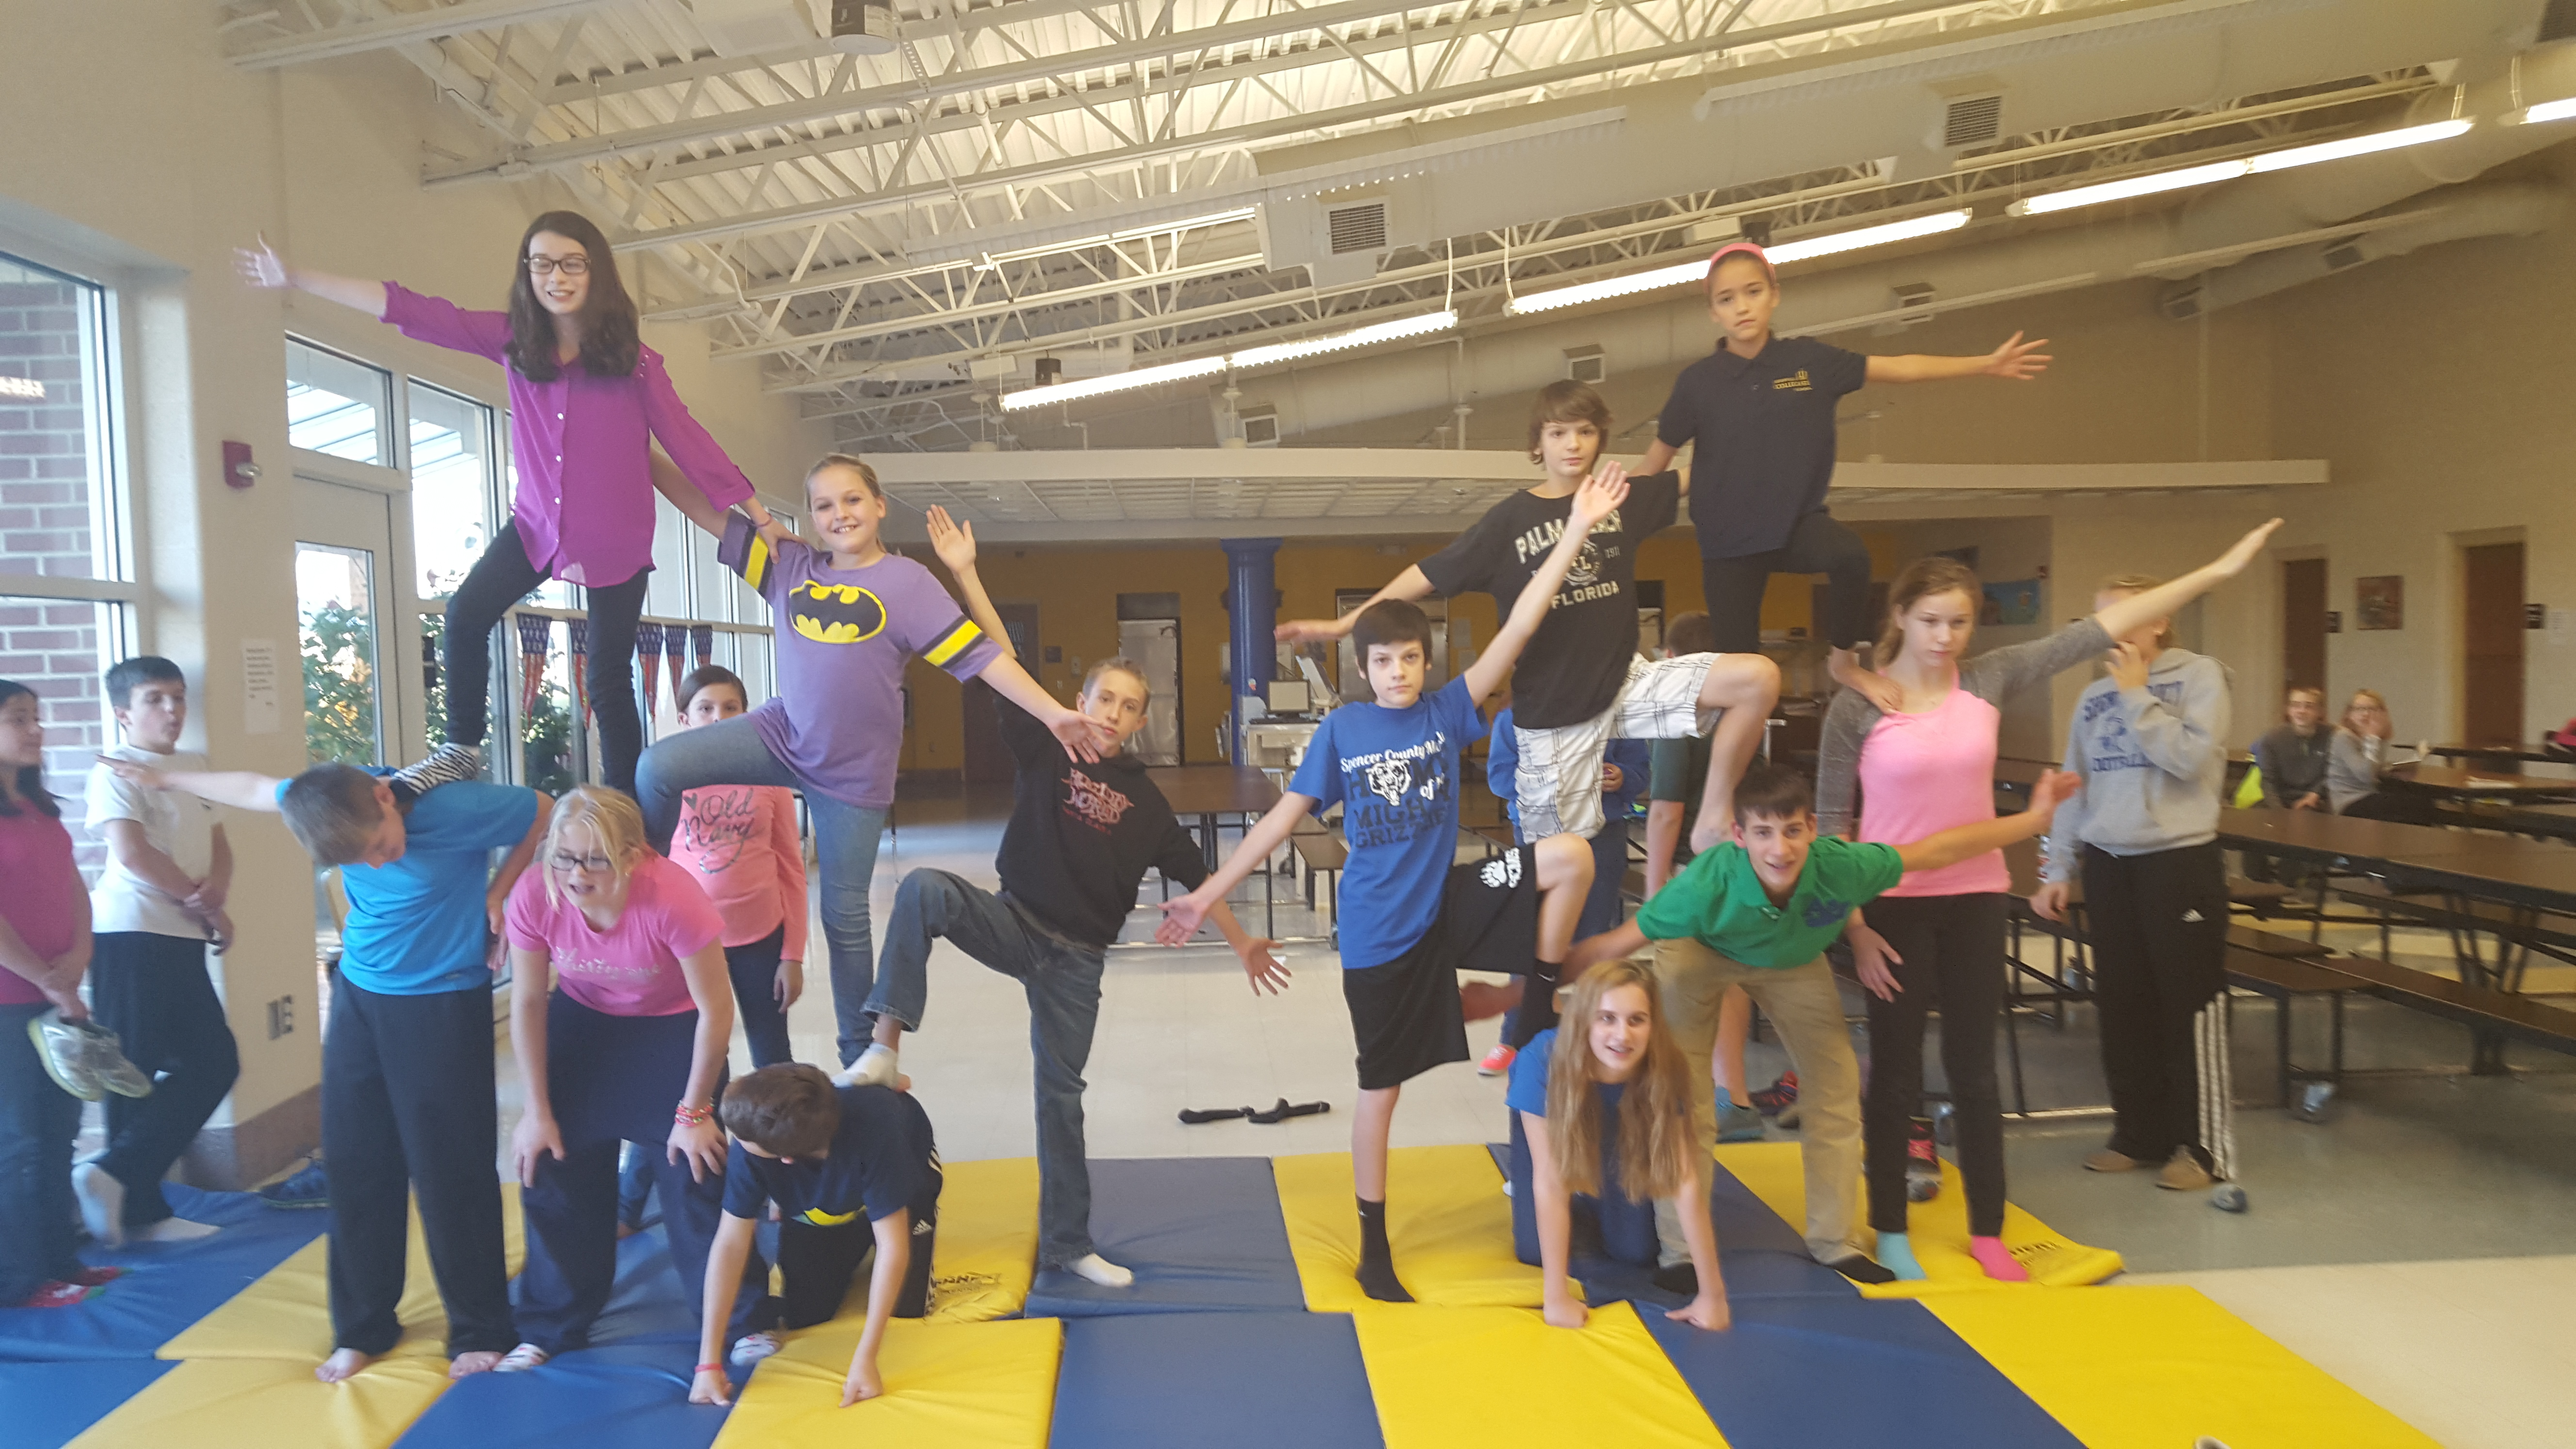 Middle Schoolers learning at Circus Camp